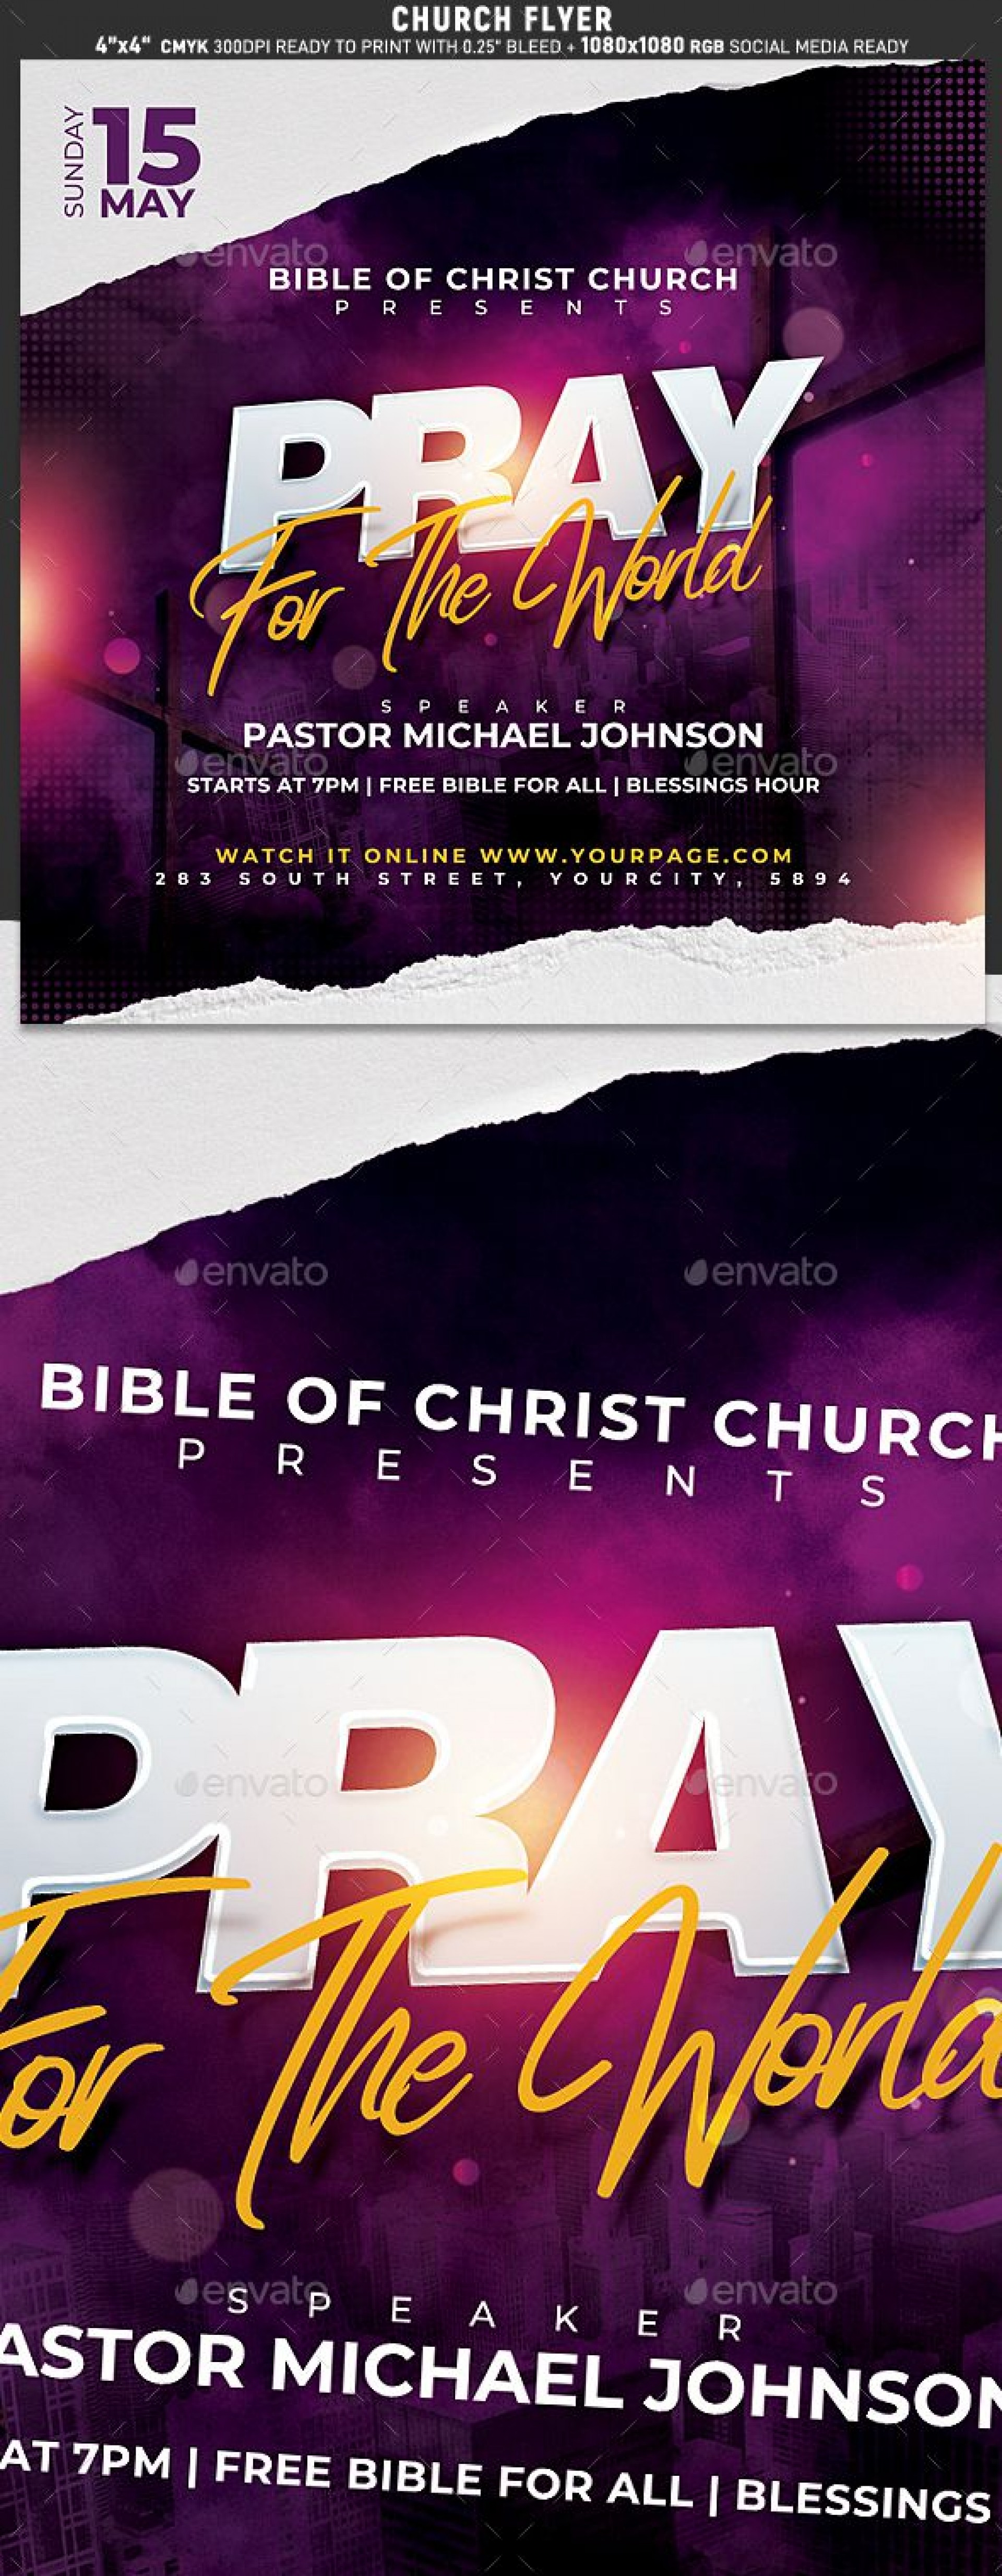 005 Shocking Church Flyer Template Photoshop Free Picture  Psd1920